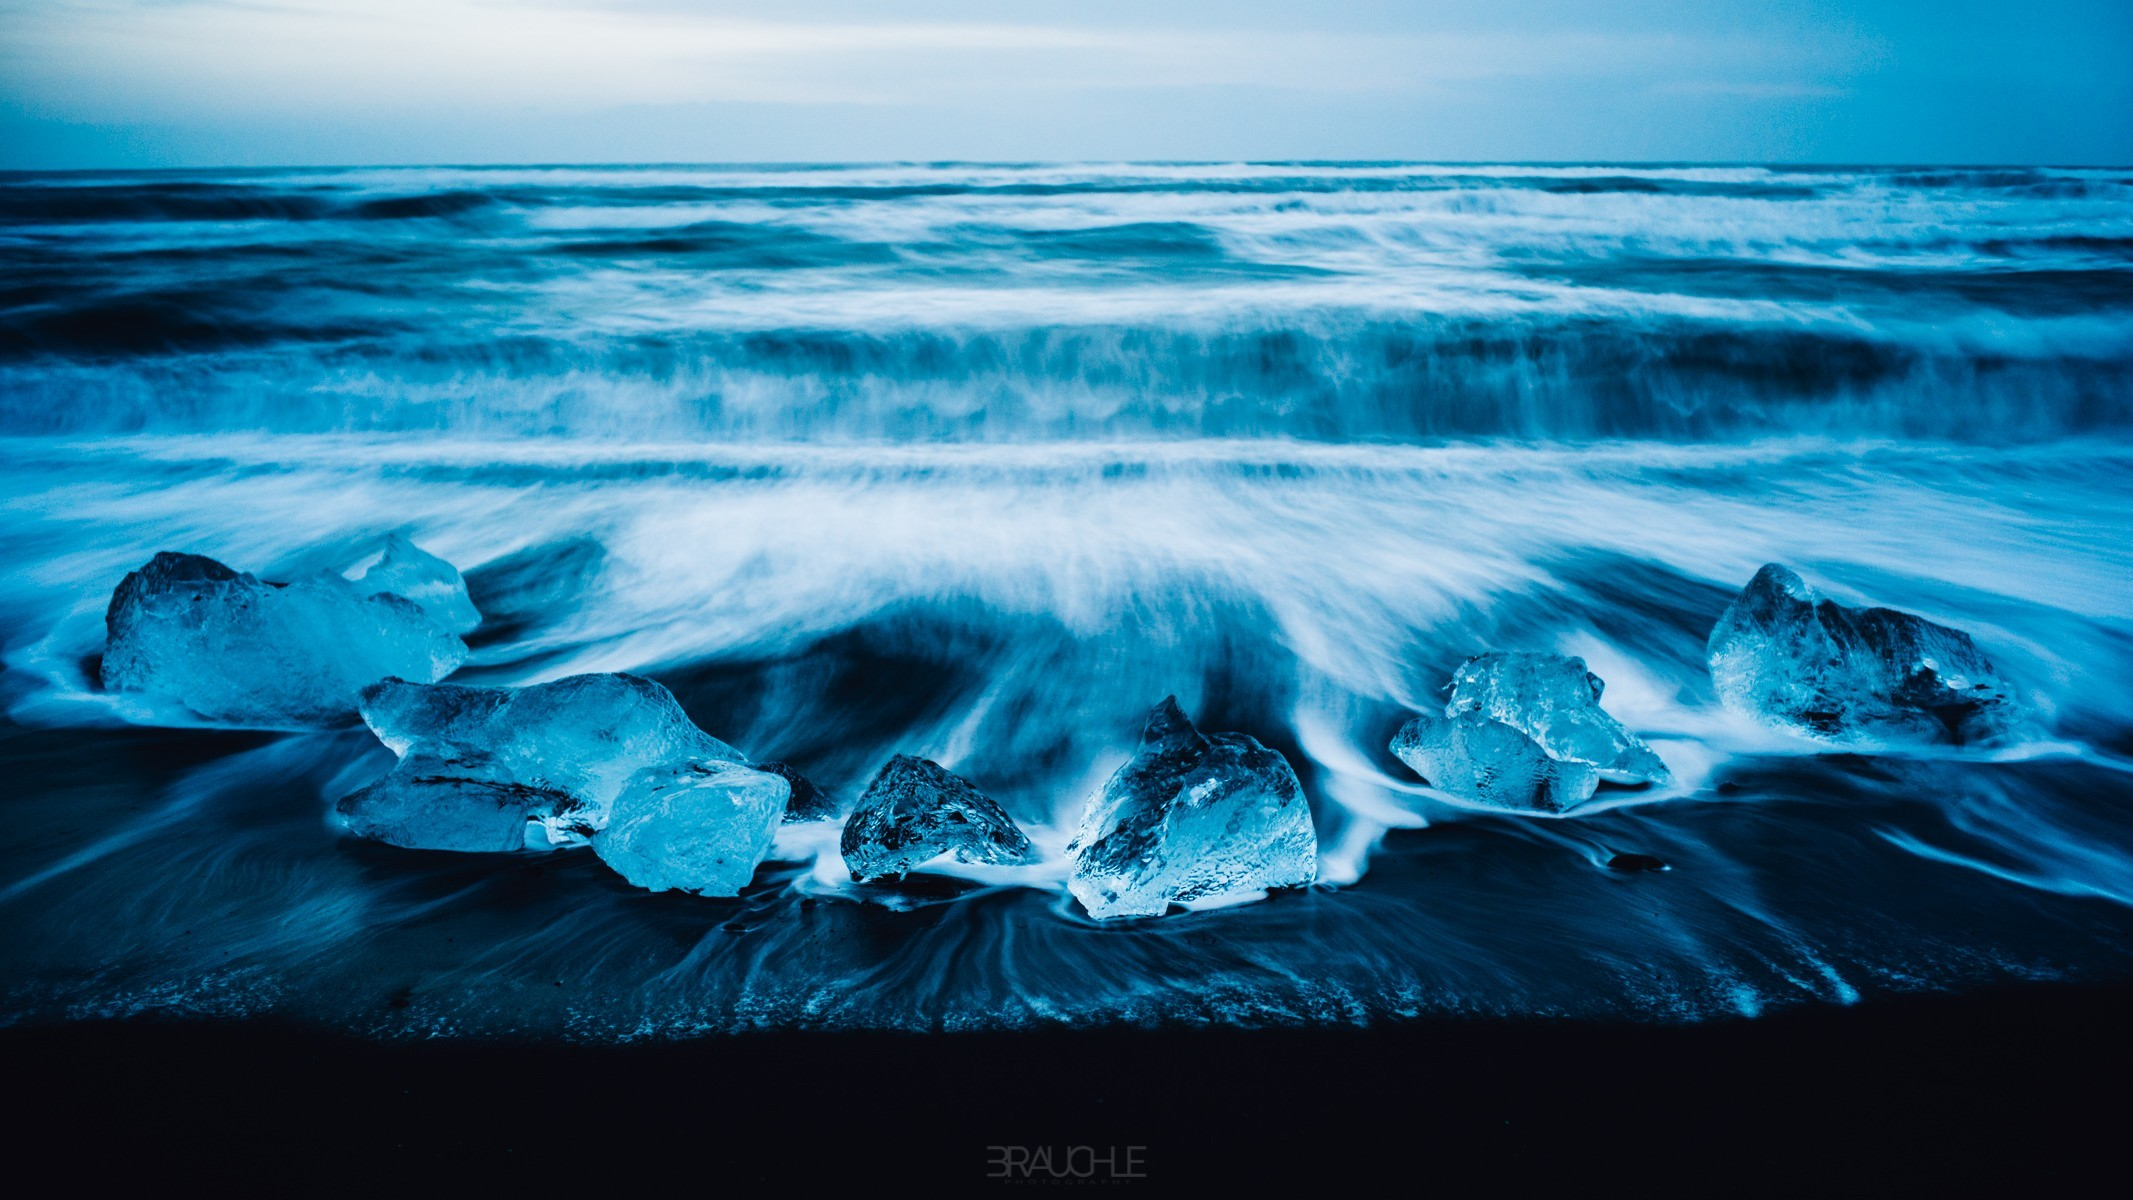 iceland-joekurlarlon-black-beach-ice-blocks-1